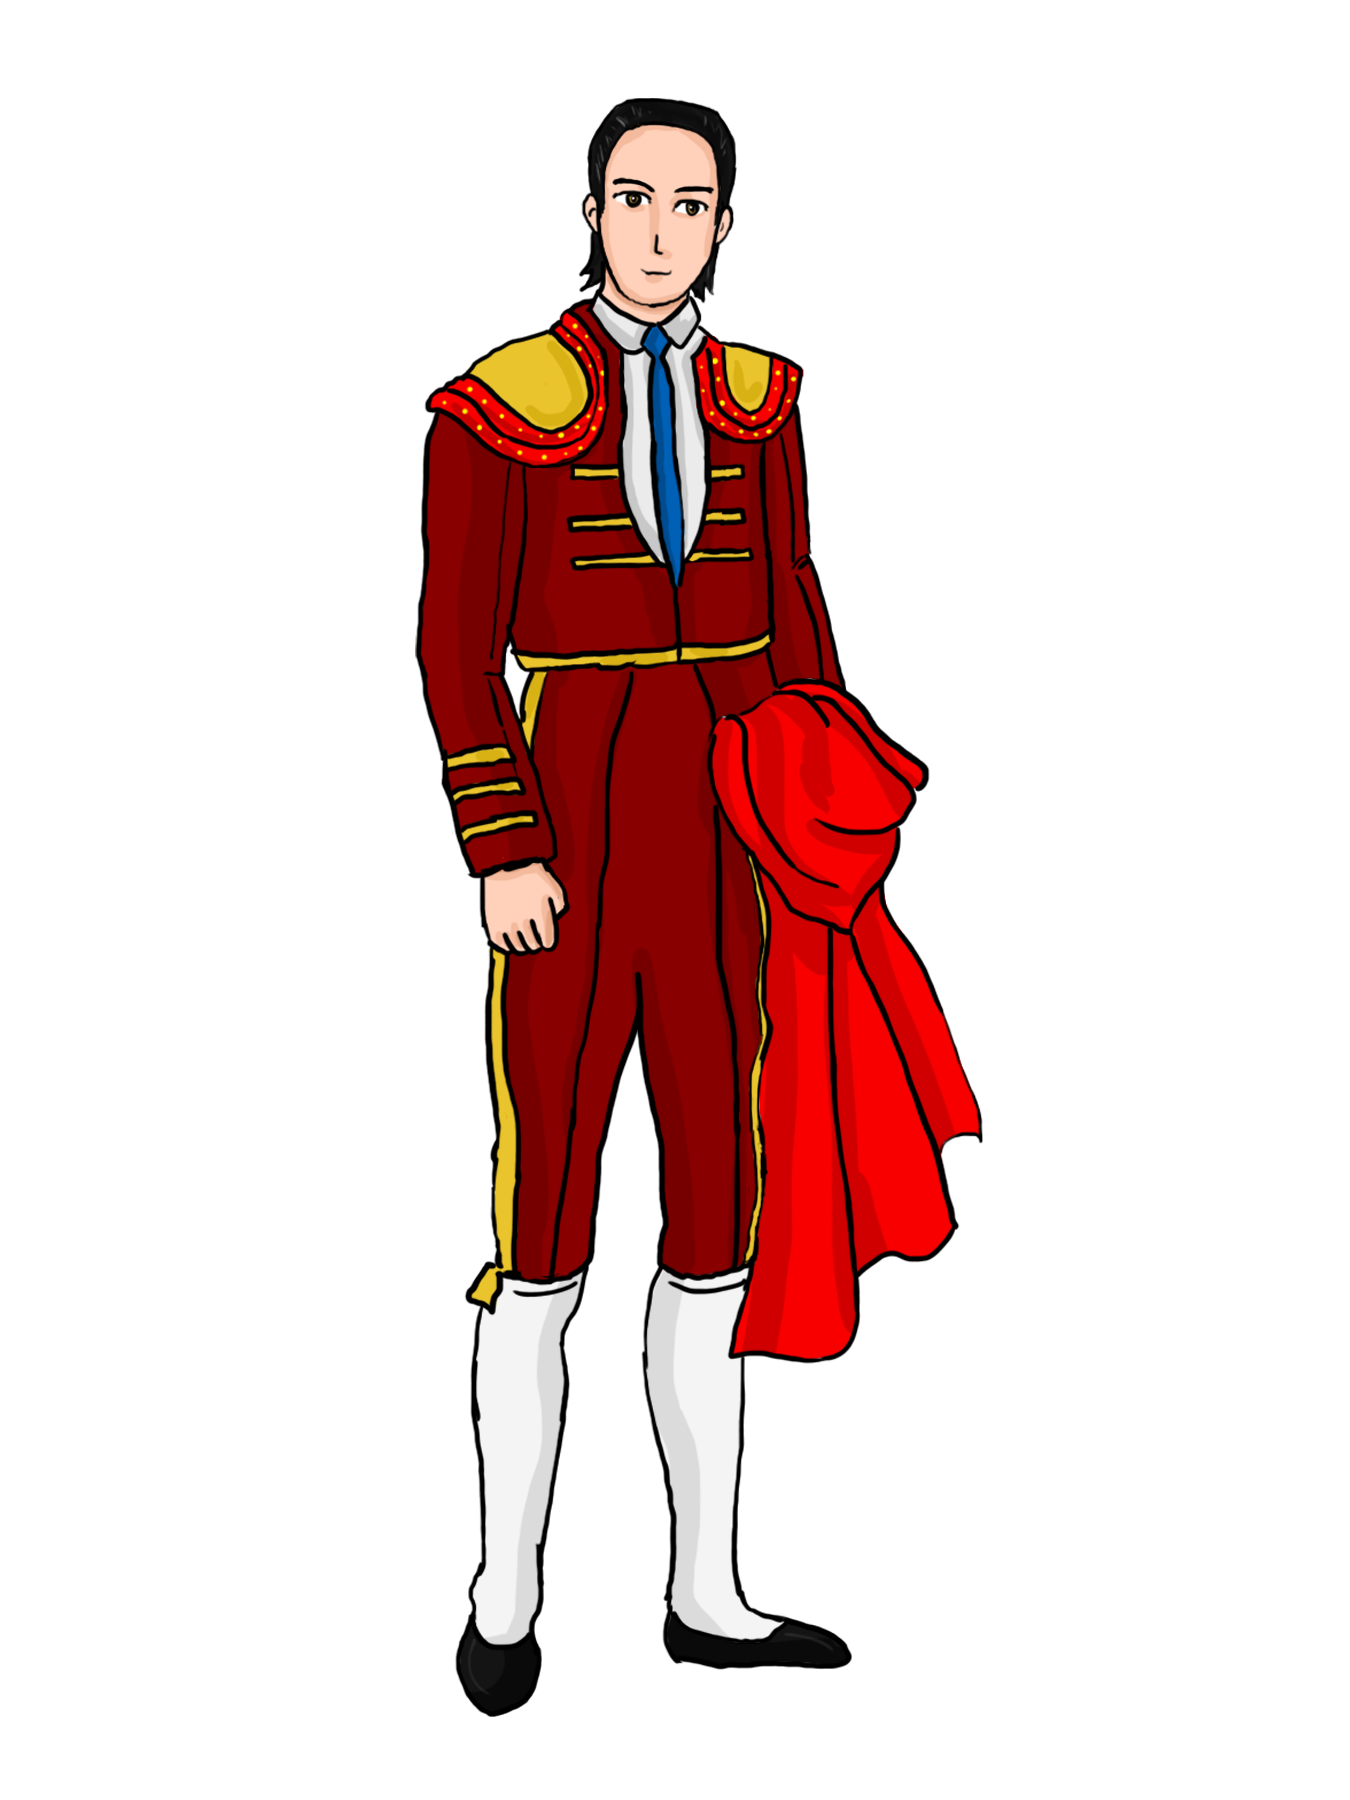 Matador drawing outfit. Clipart transparent free on